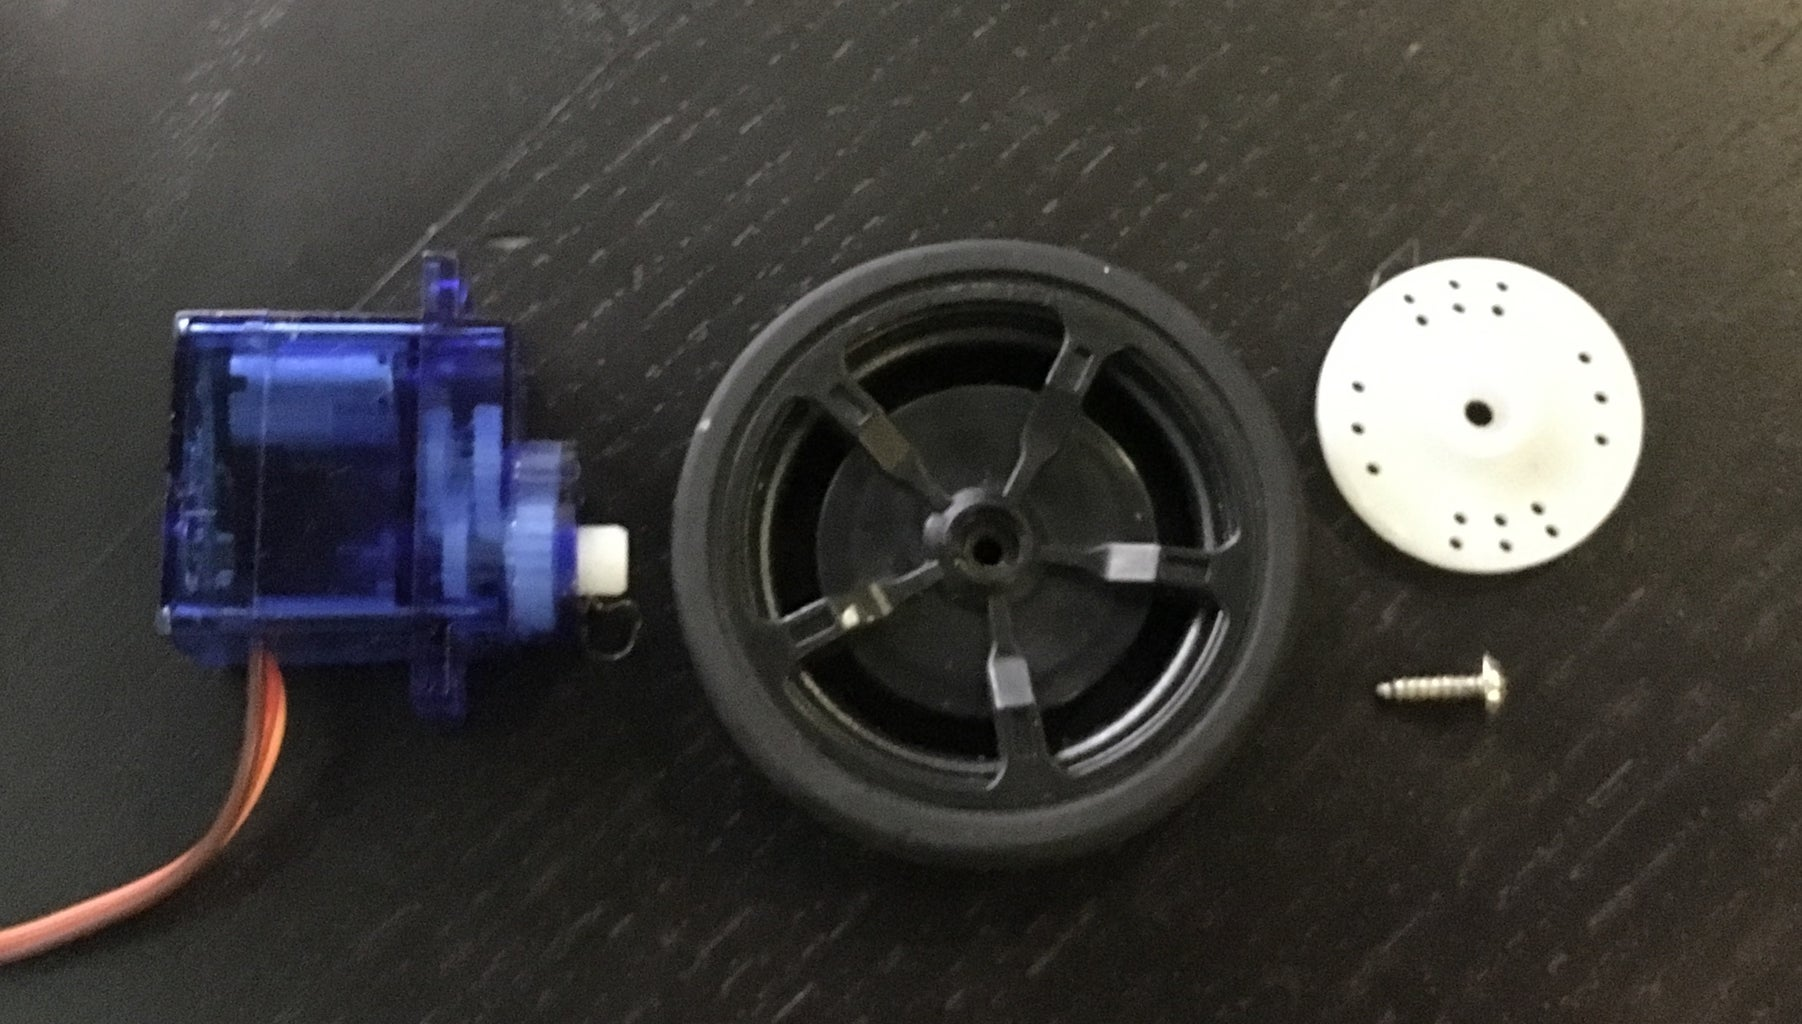 Putting the Wheels and Servos Together